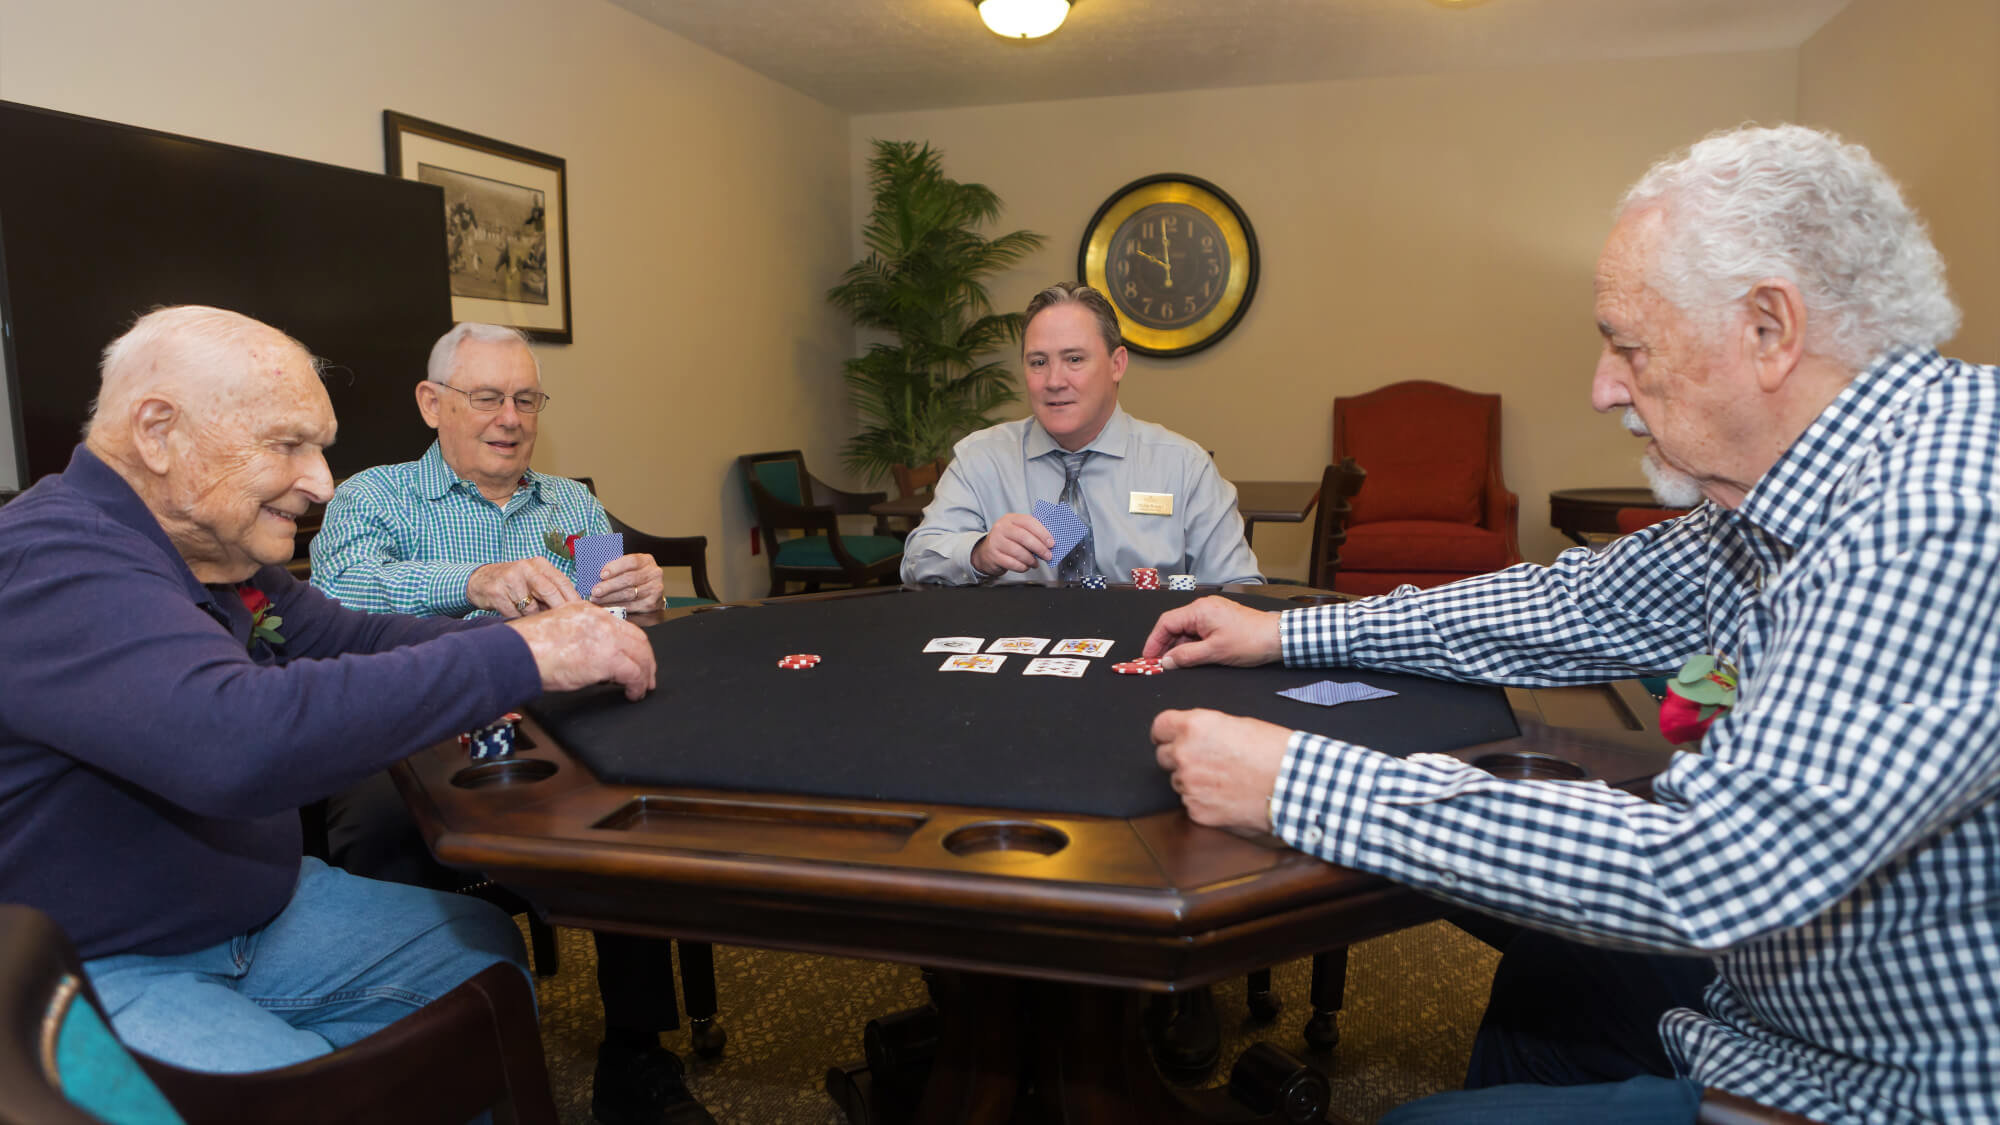 Friendly game of cards at Vickery Rose.